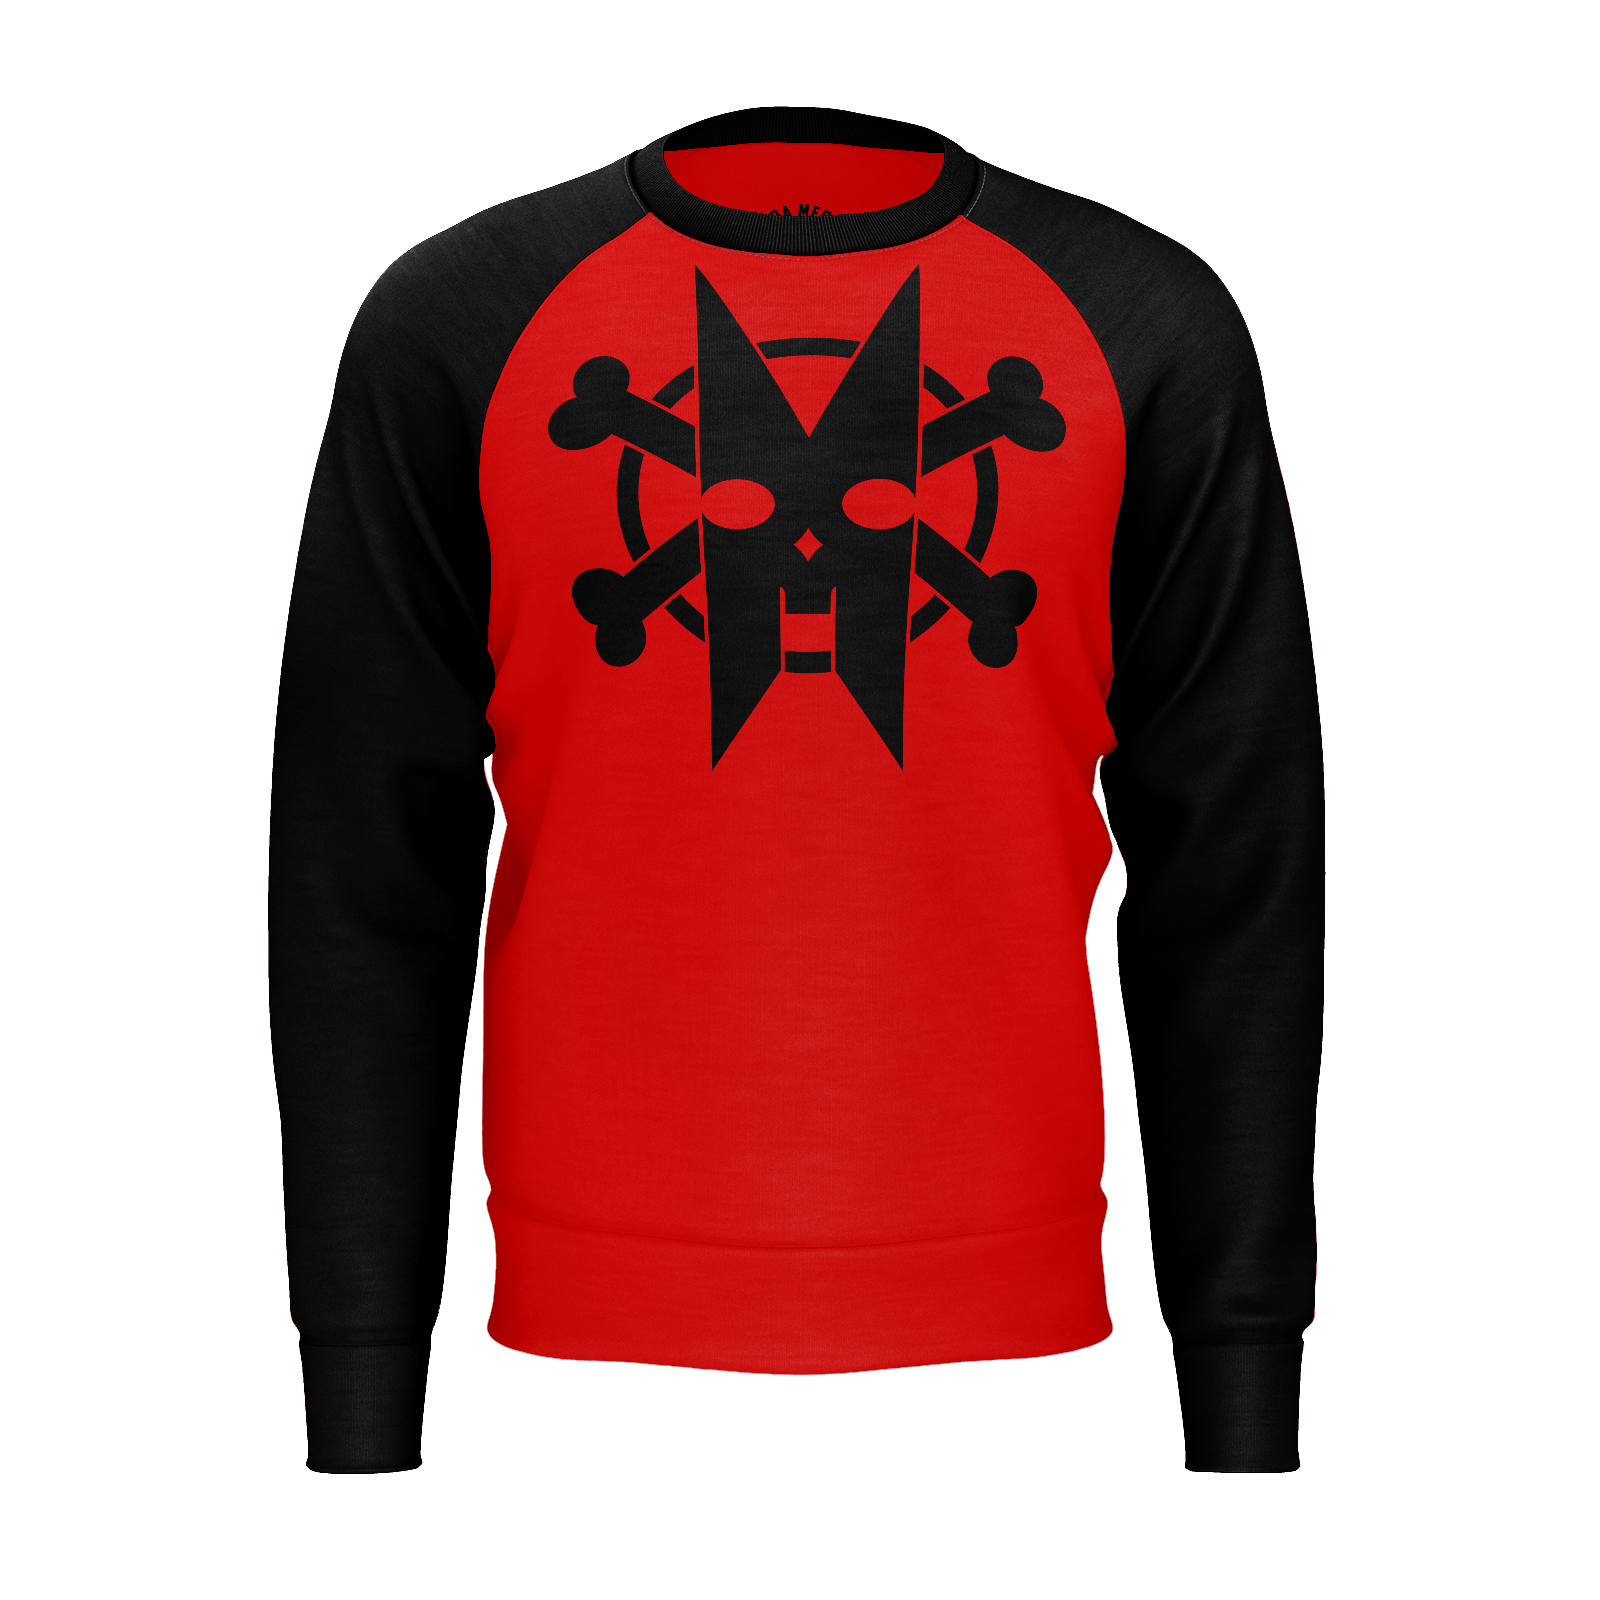 XM GYMWEAR RED AND BLACK RAGLAN SWEATSHIRT